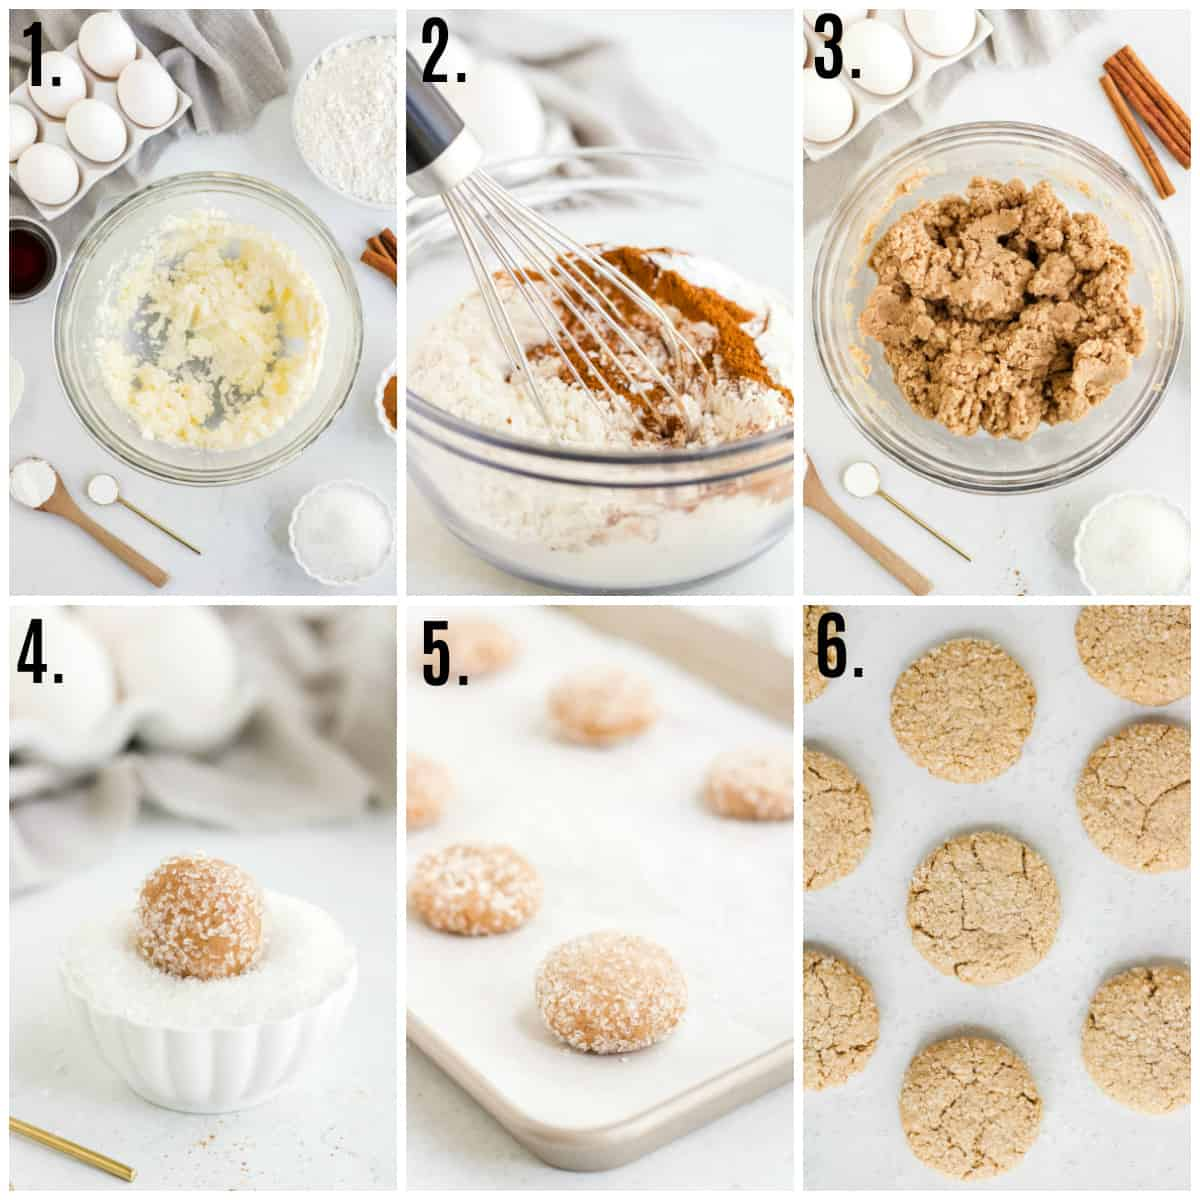 Step by step photos on how to make Spice Cookies